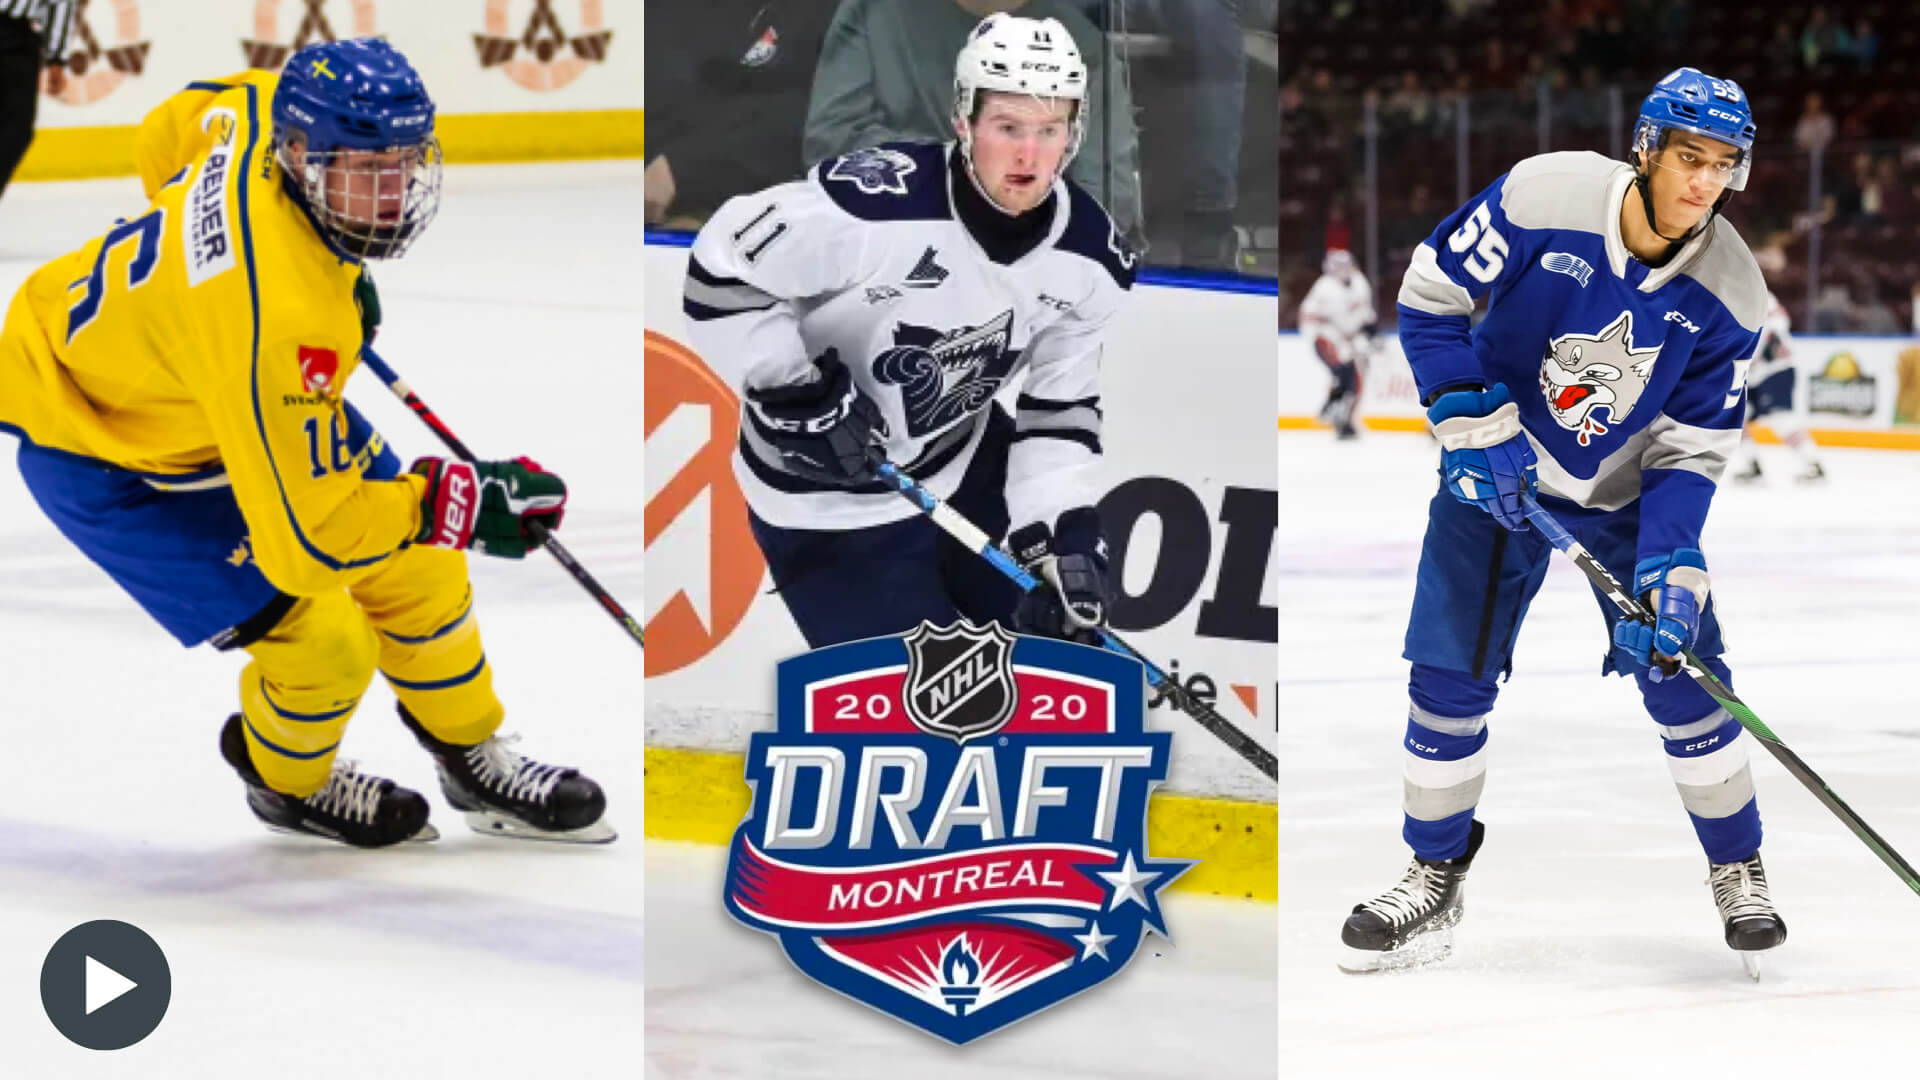 Video Highlights of Top 10 Players Selected in 2020 NHL Draft